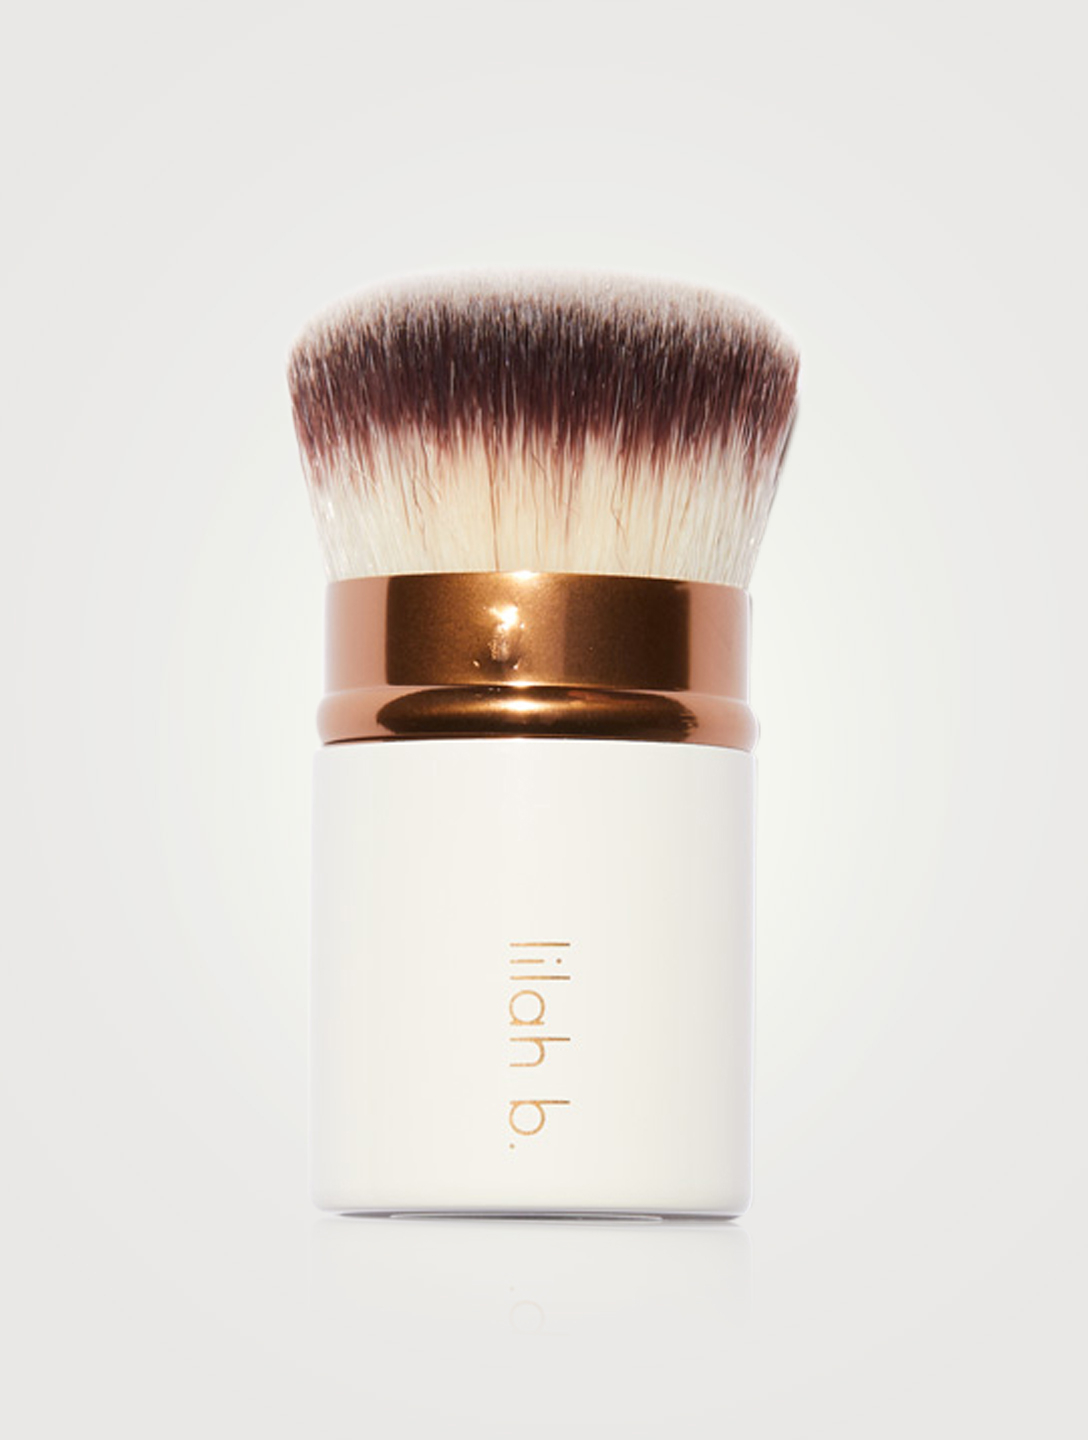 LILAH B. #6 Retractable Créme Foundation Brush Beauty